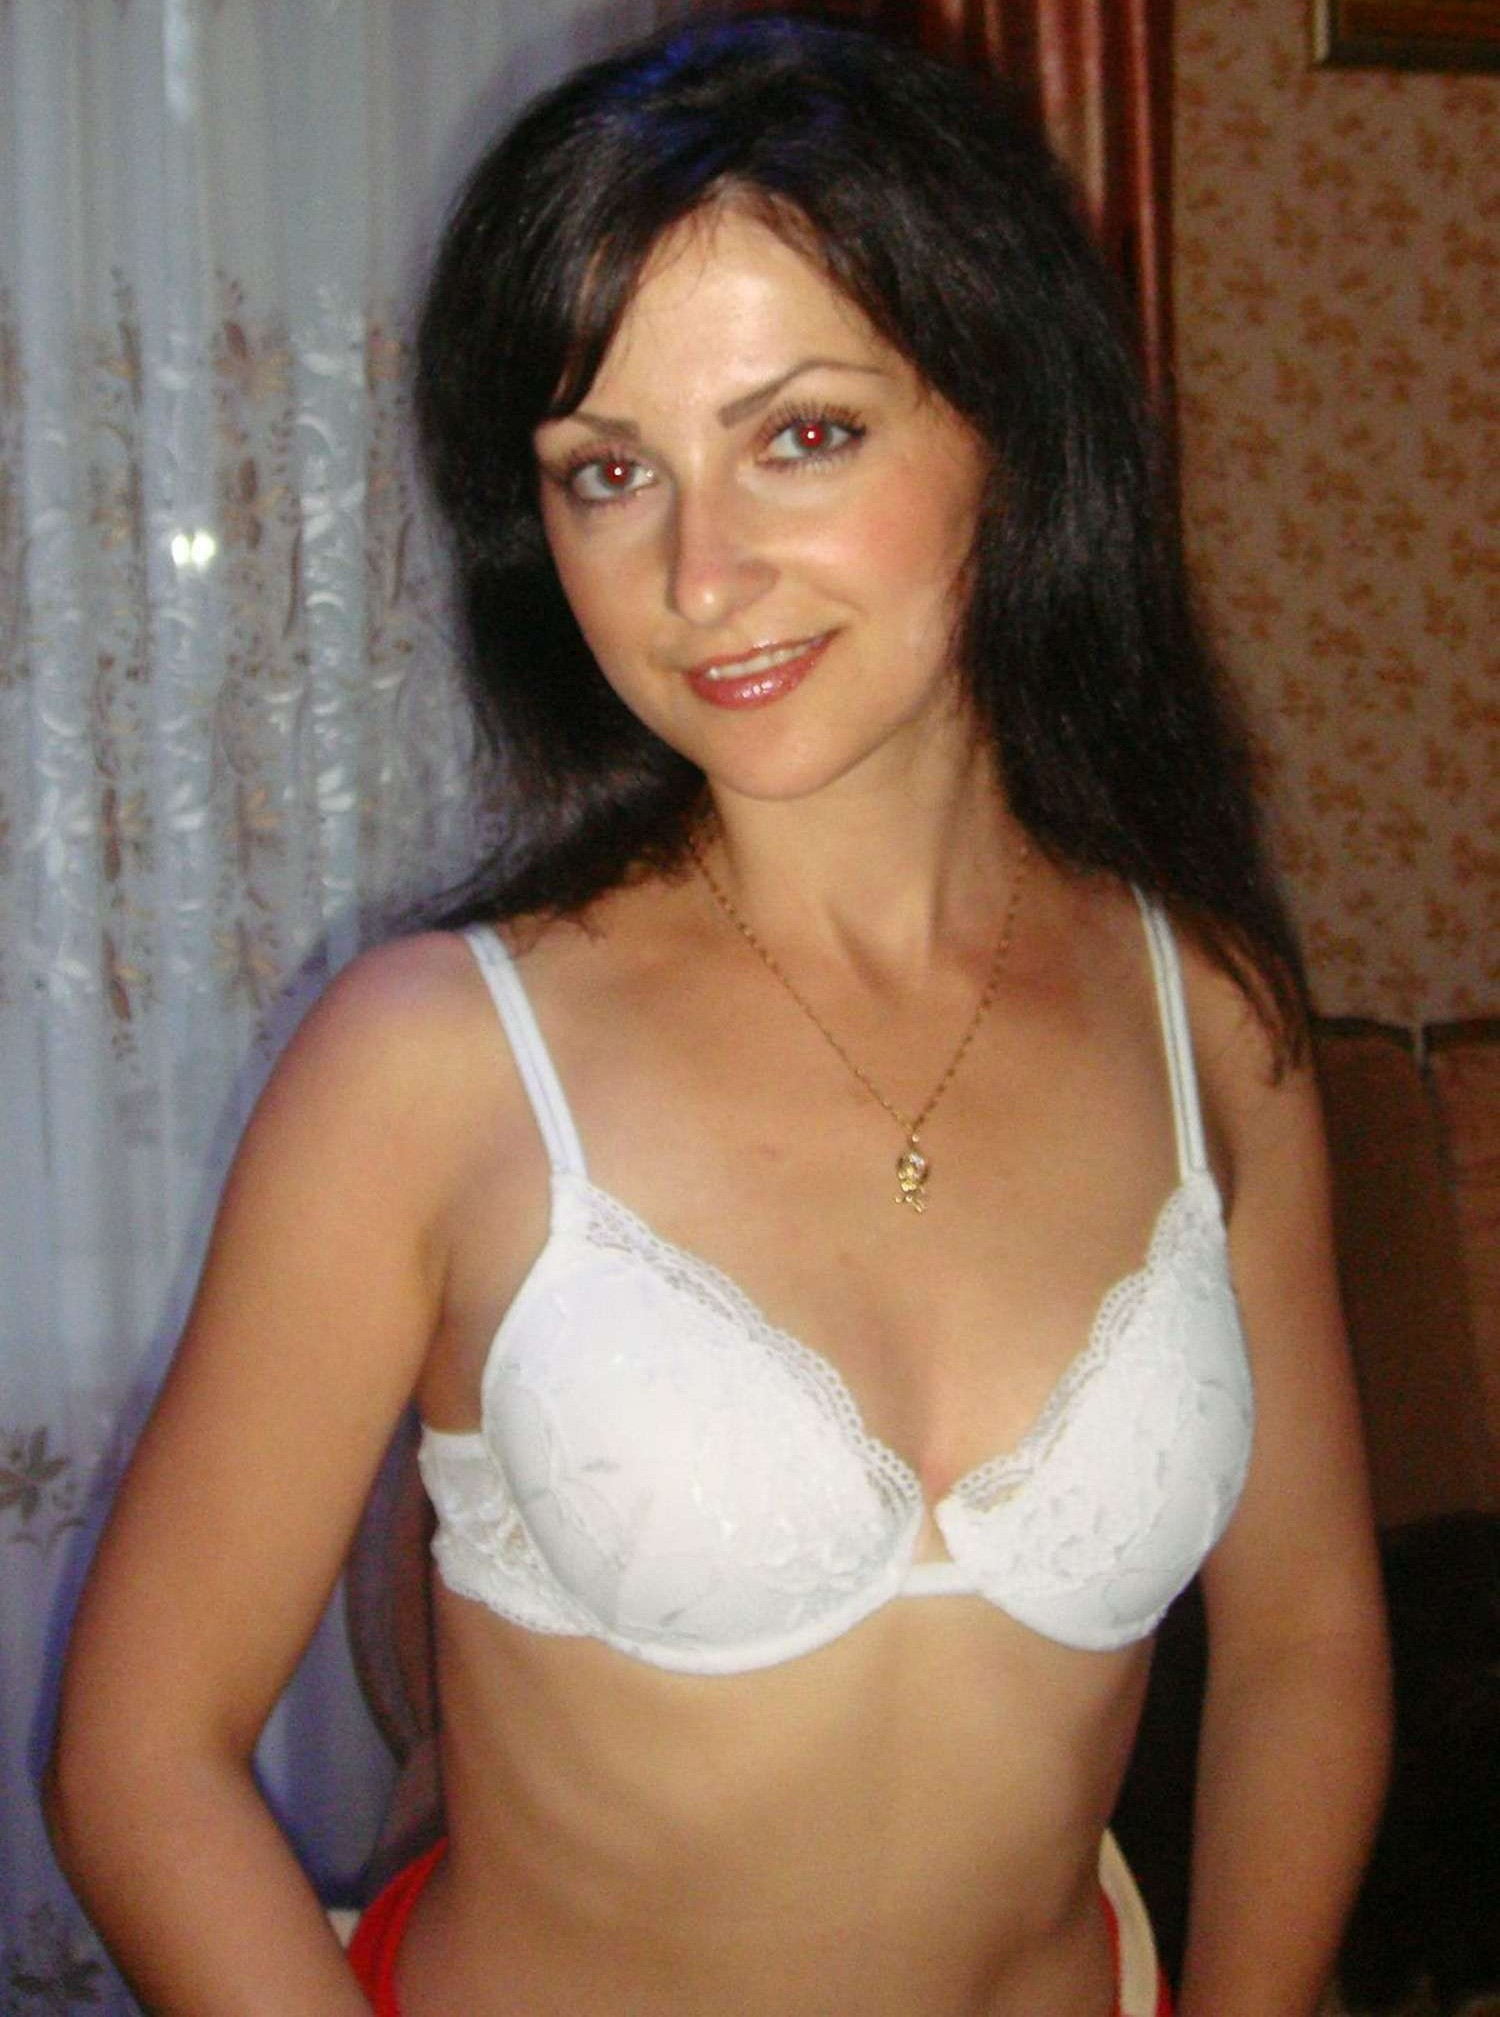 Amateur nude milf photos